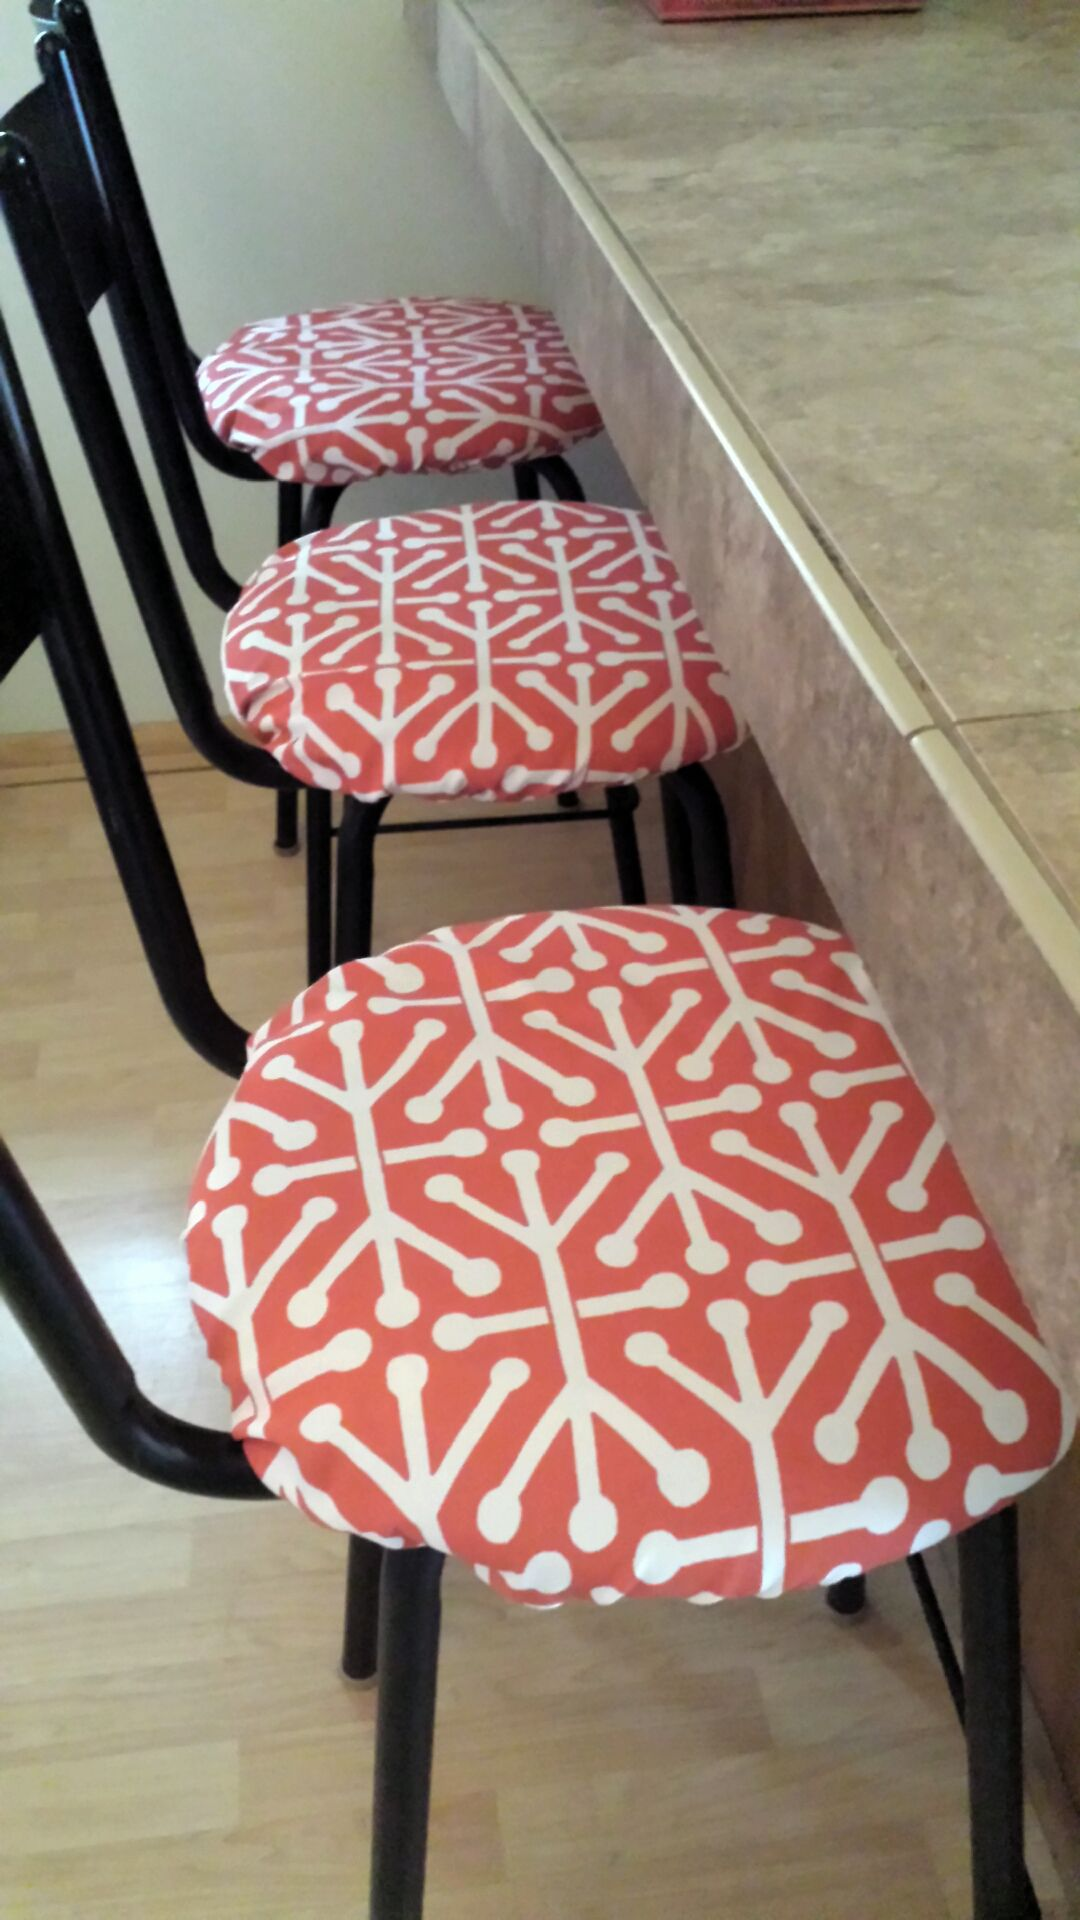 A Client Ordered Three Round Barstool Covers In Aruba Indoor Outdoor Round Barstool Covers For Her Home They Look Gr Bar Stool Covers Stool Covers Bar Stools